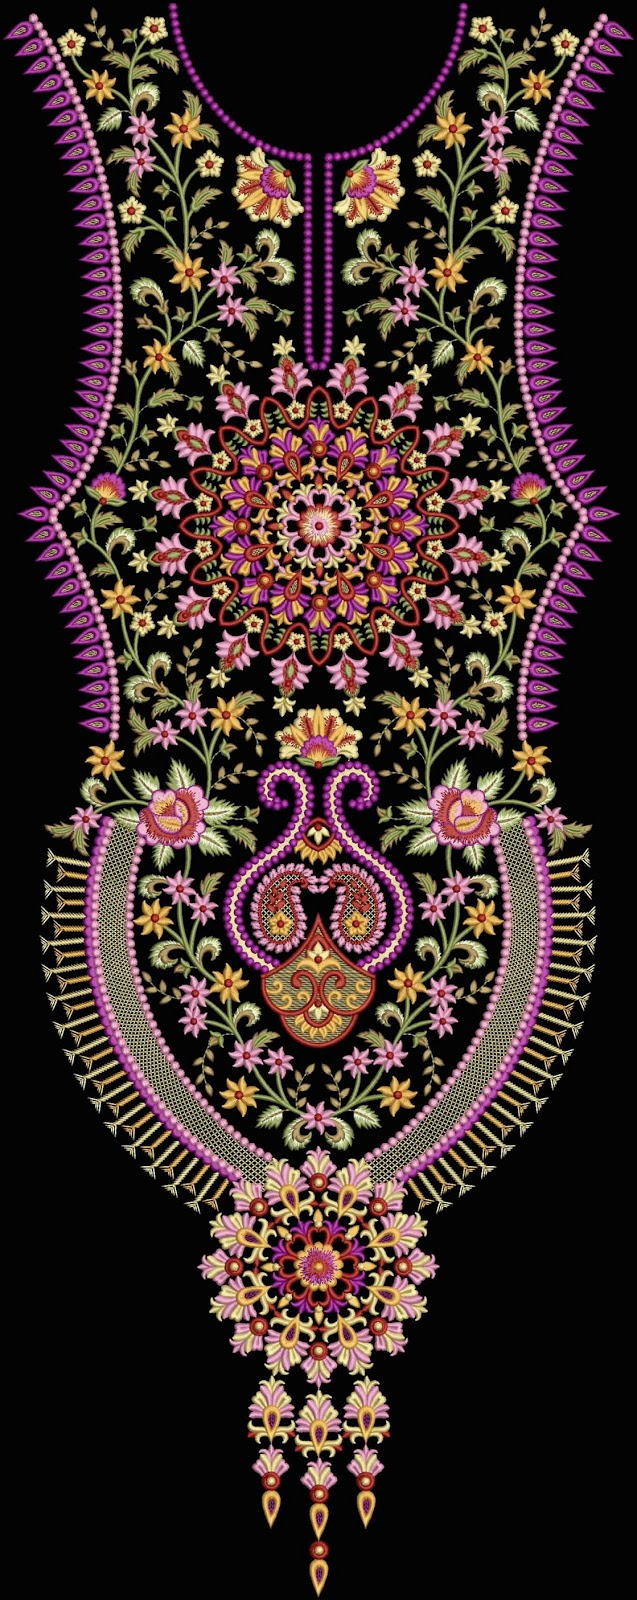 Pakistani Embroidery image